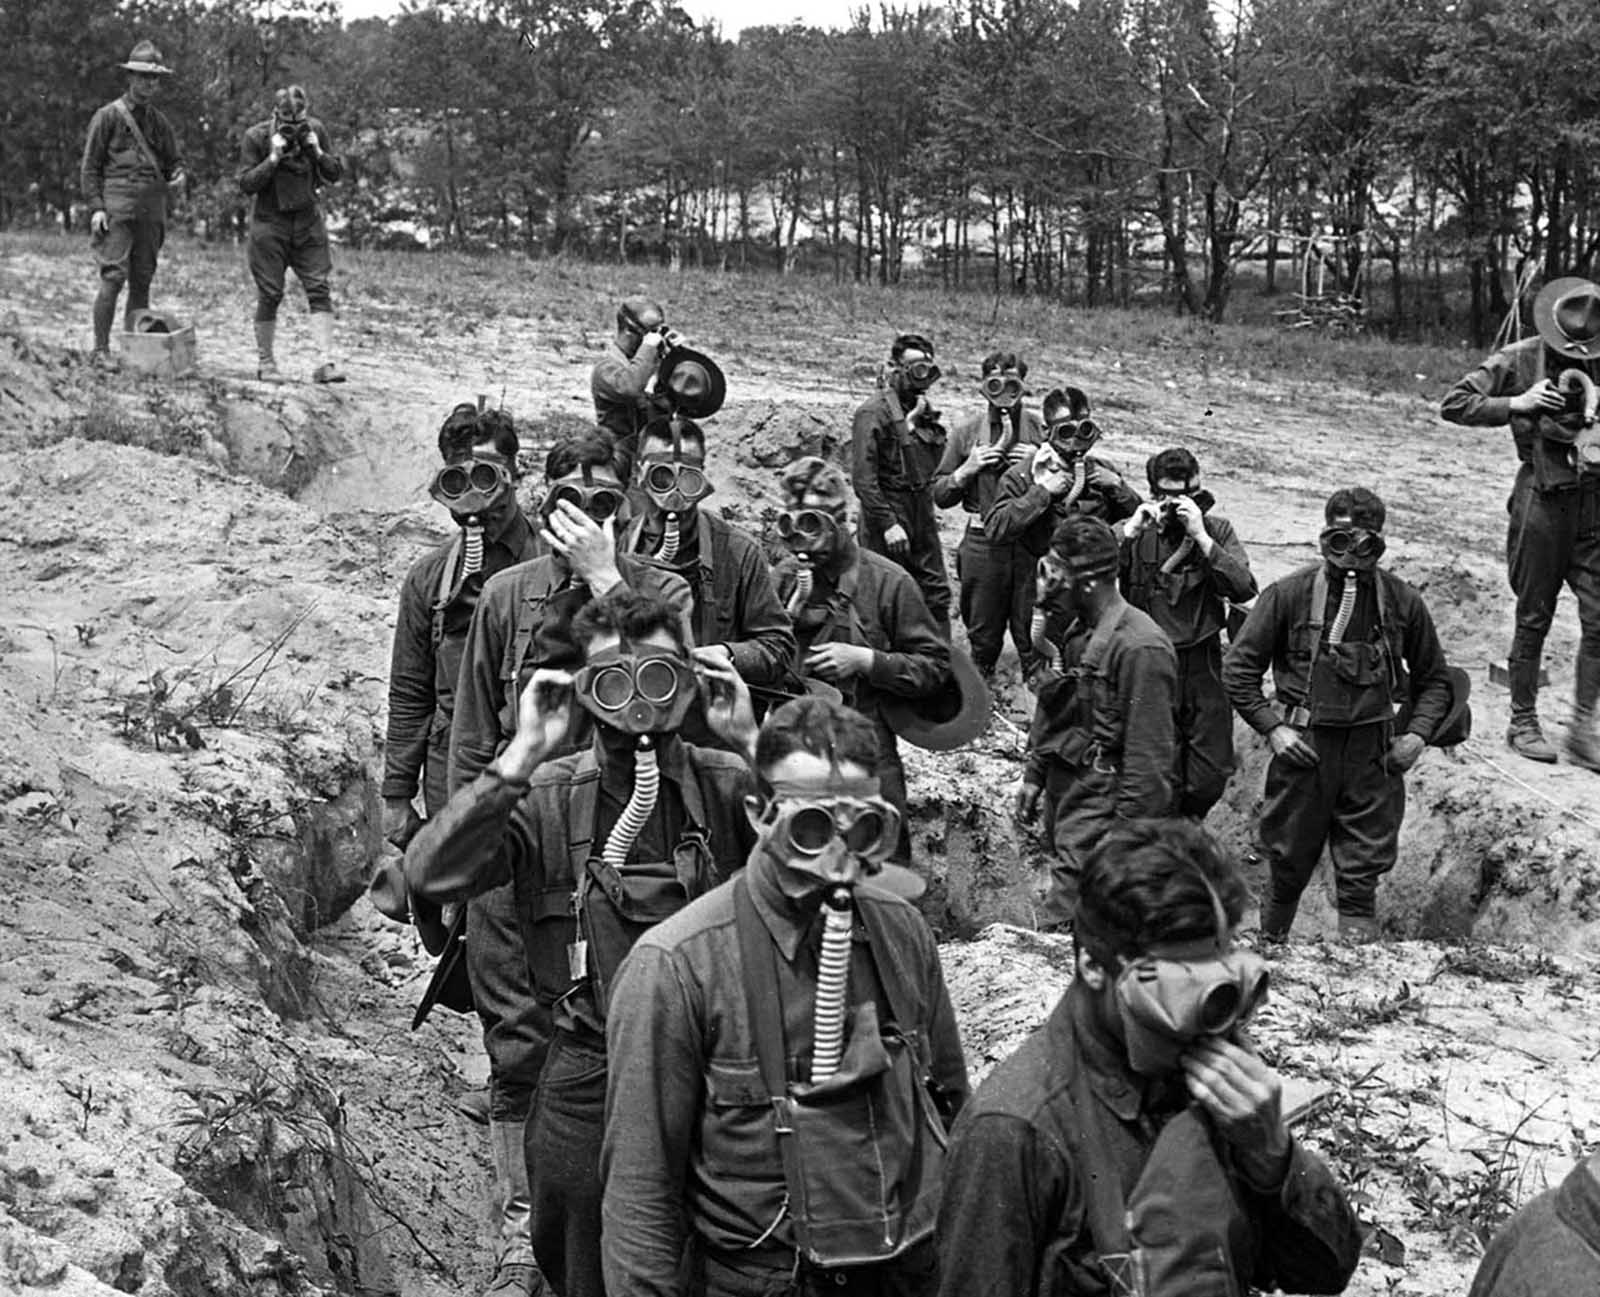 U.S. Soldiers in training, about to enter a tear gas trench at Camp Dix, New Jersey, ca. 1918.